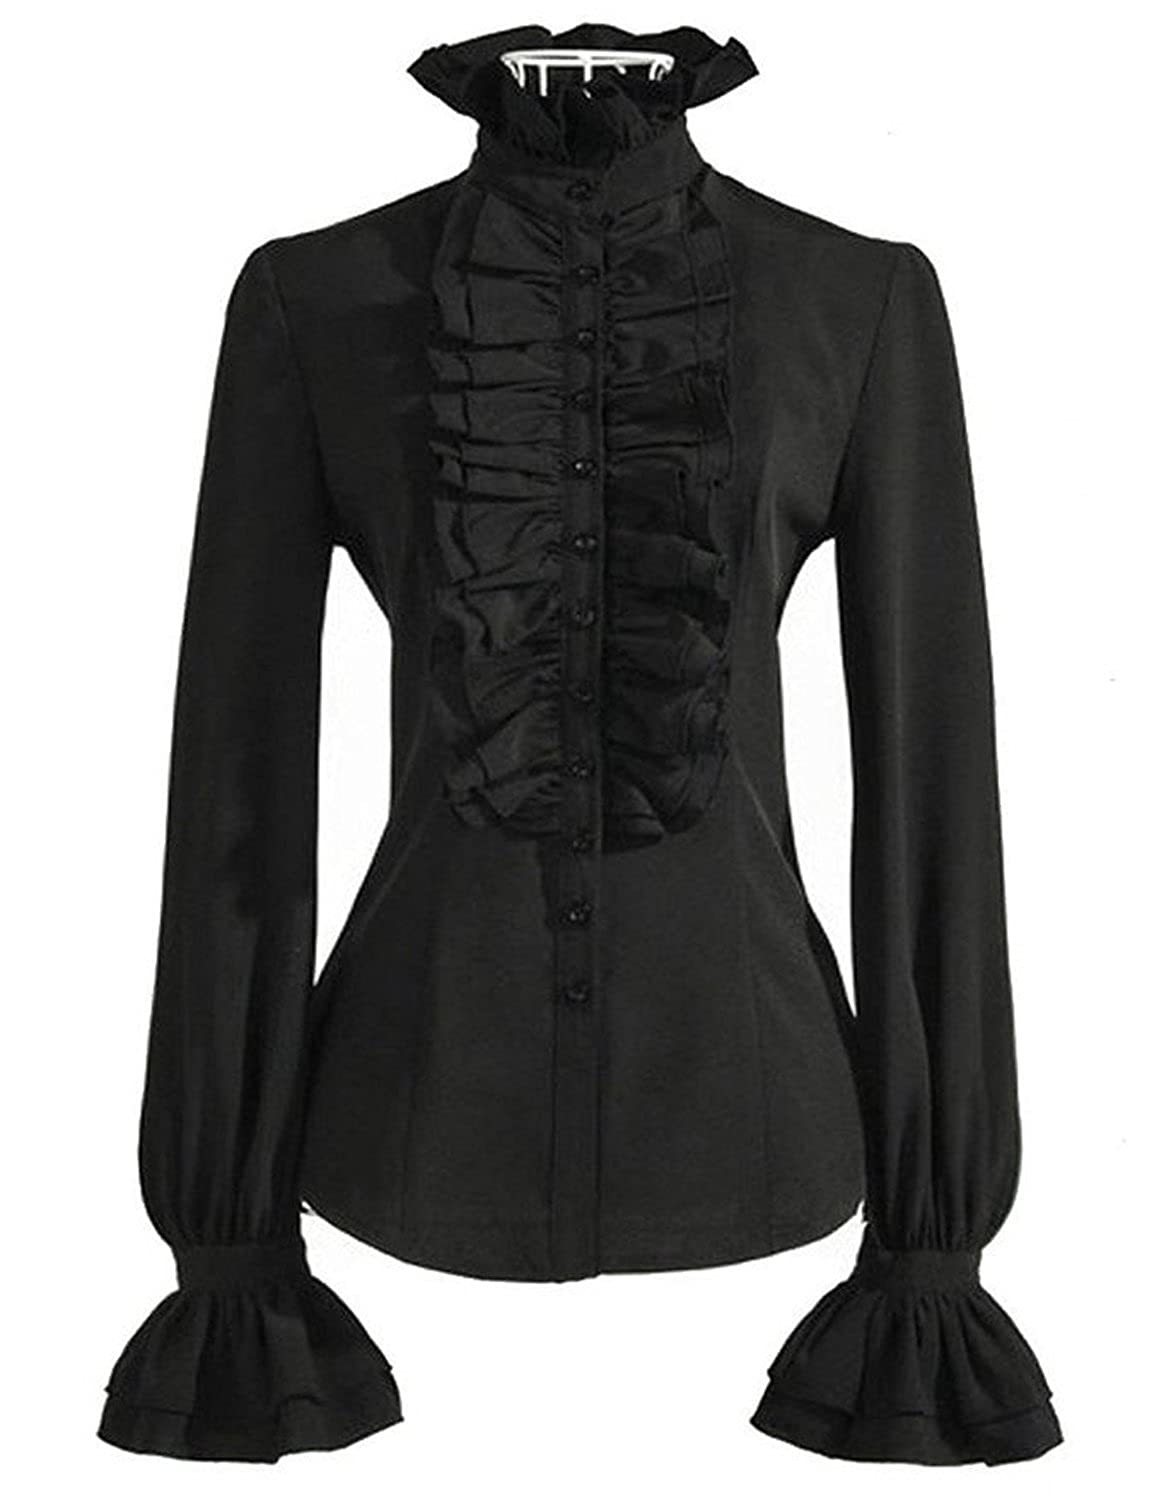 Vintage Inspired Halloween Costumes Stand-Up Collar Lotus Ruffle Shirts Blouse $21.99 AT vintagedancer.com